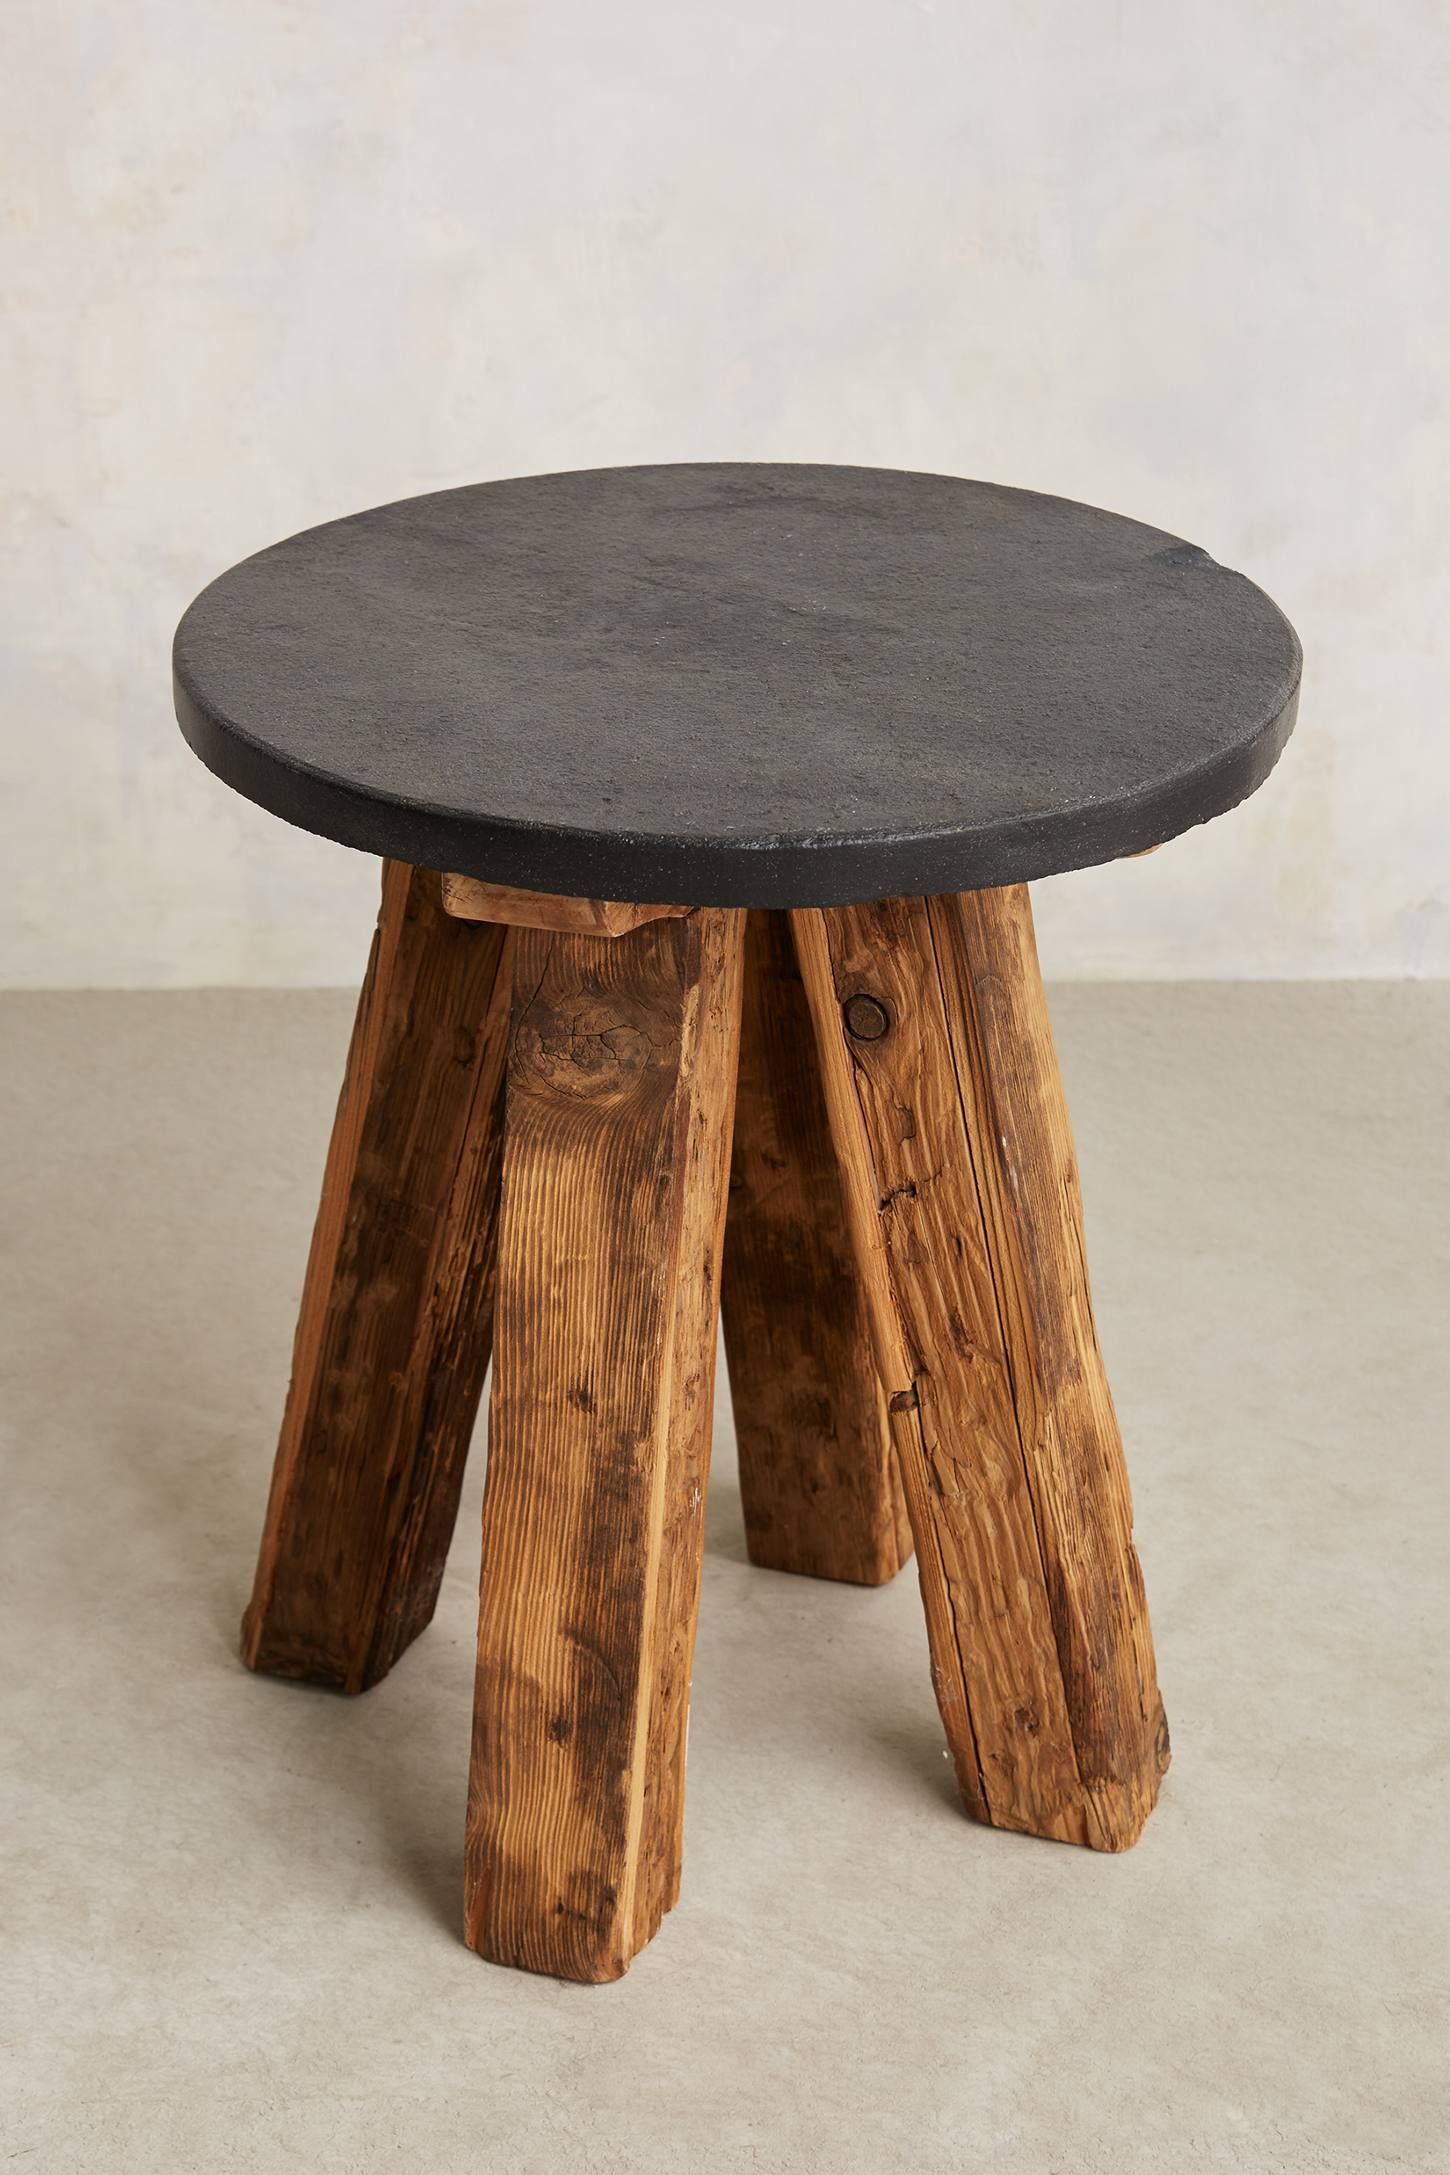 Slate Top Side Table Marble Top Side Table Home Furniture Side Table [ 2175 x 1450 Pixel ]